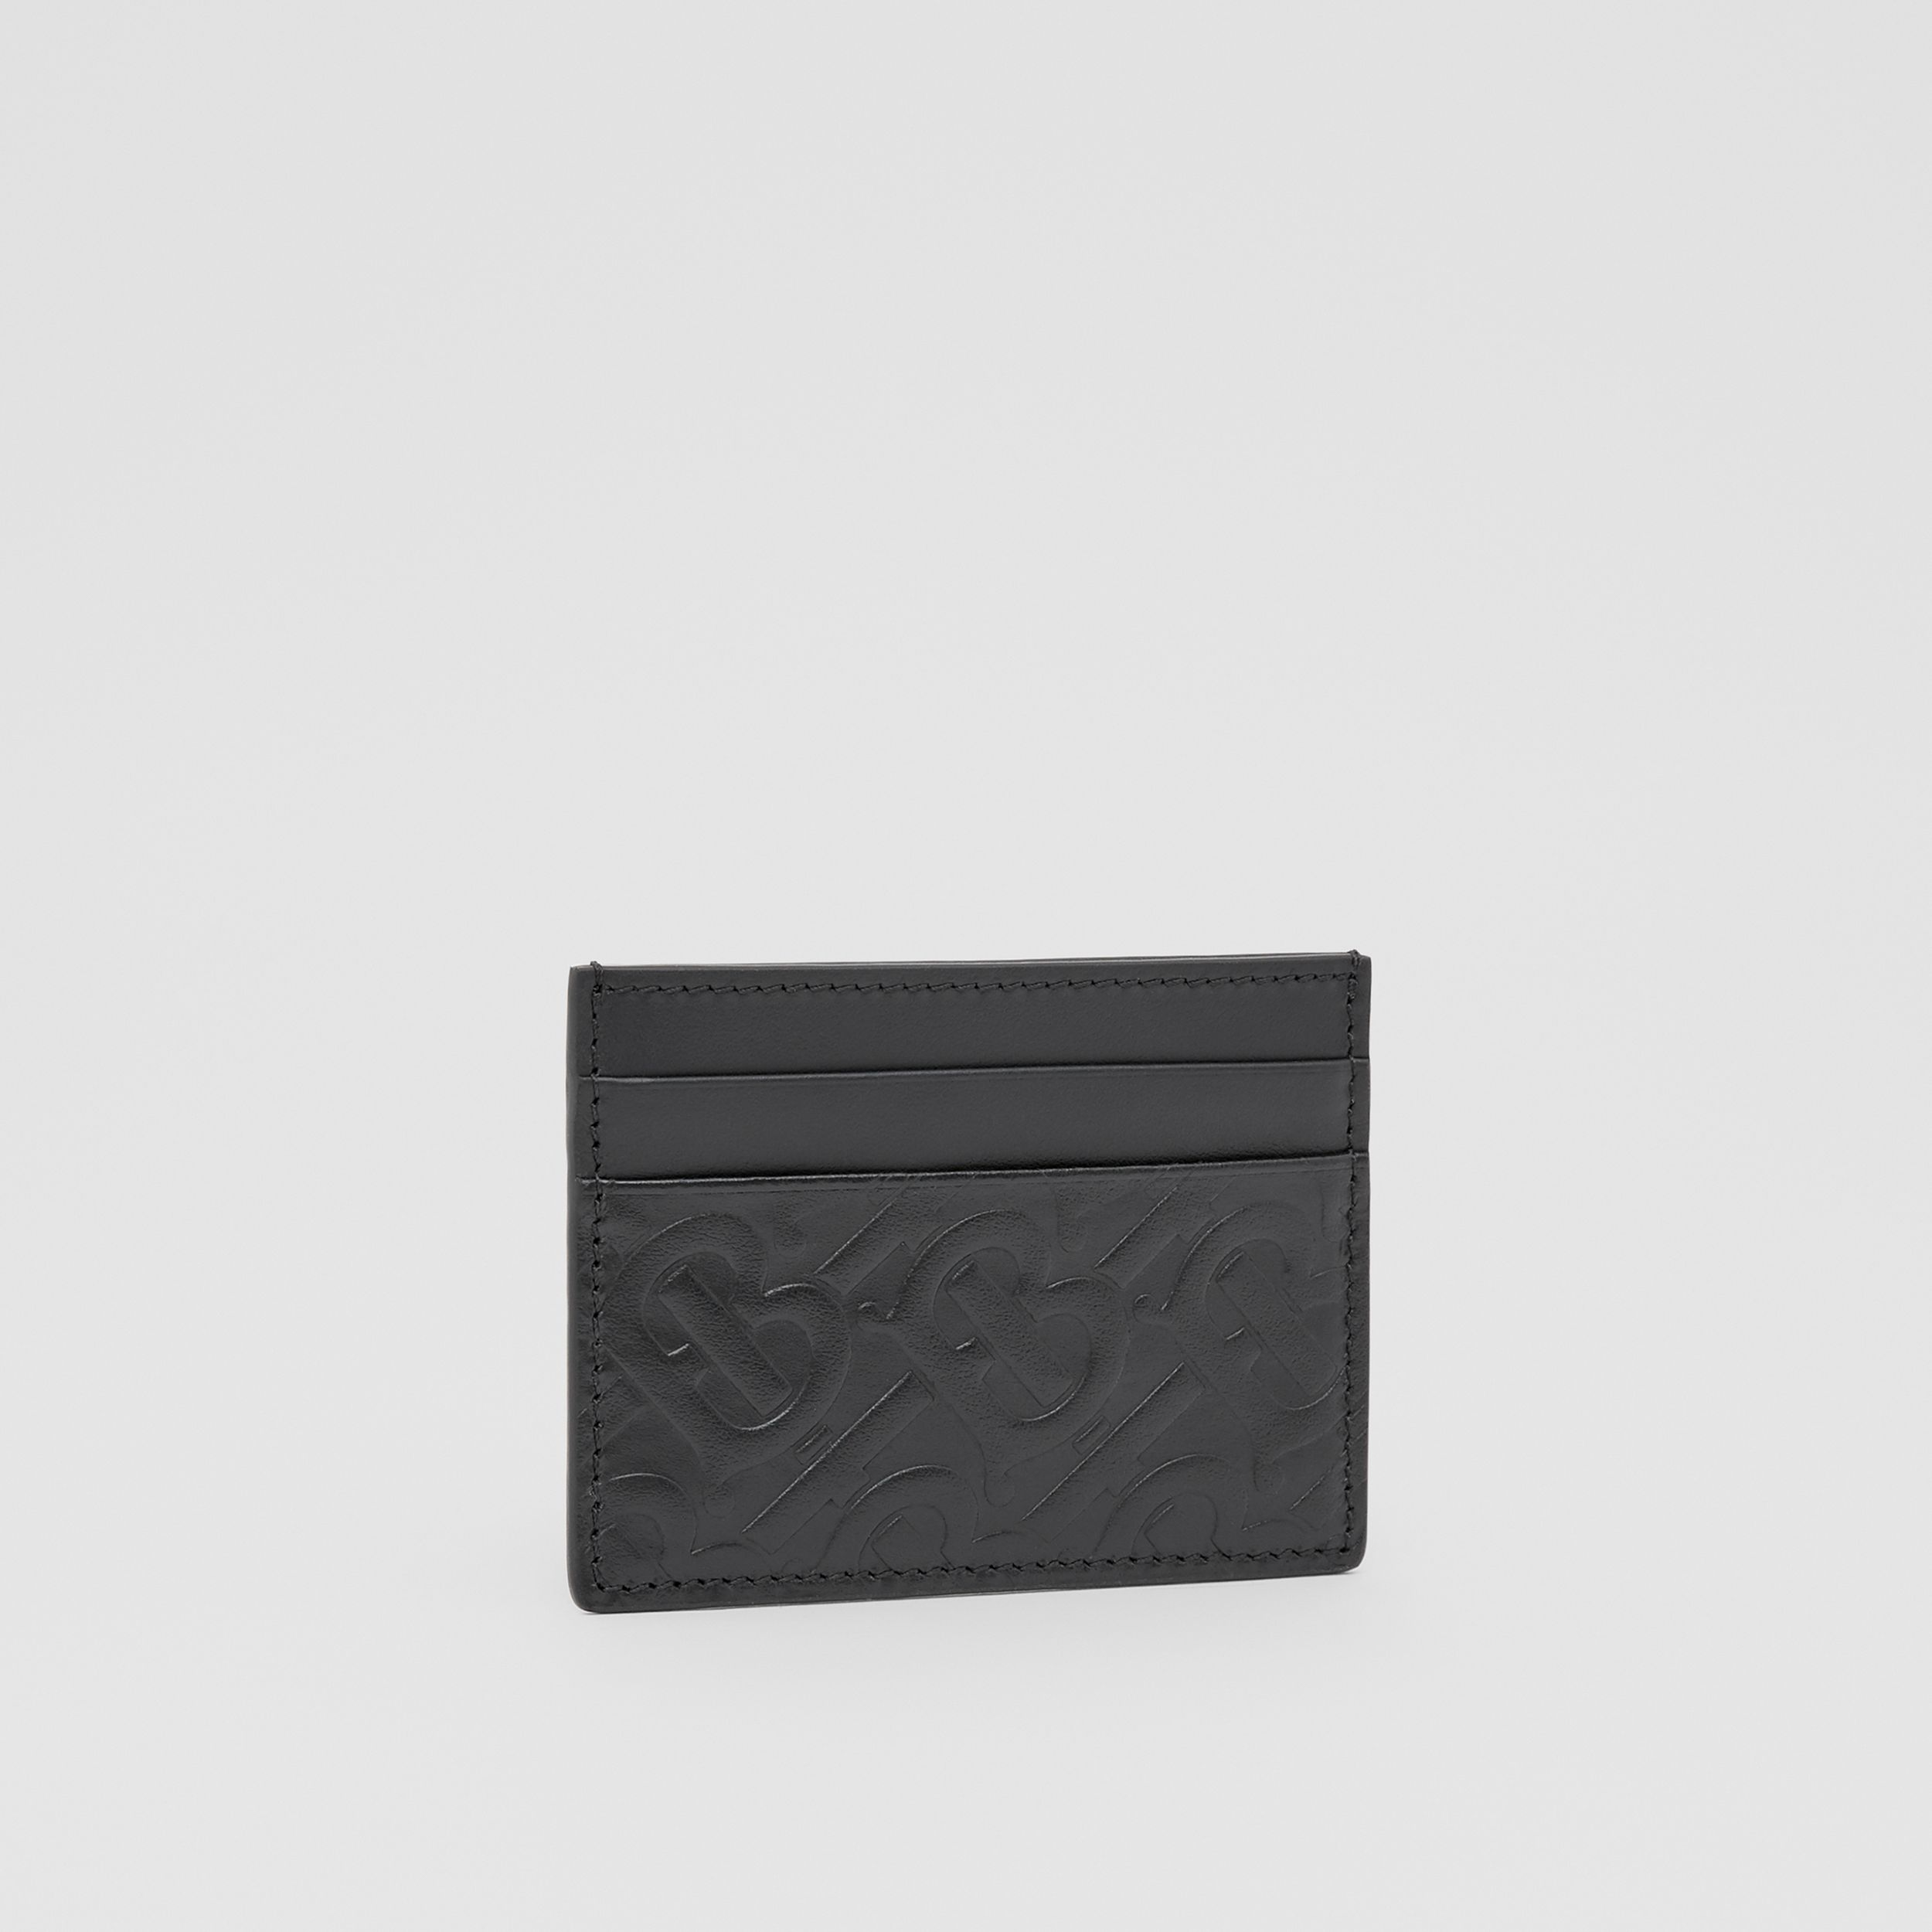 Monogram Leather Card Case in Black | Burberry Canada - 4